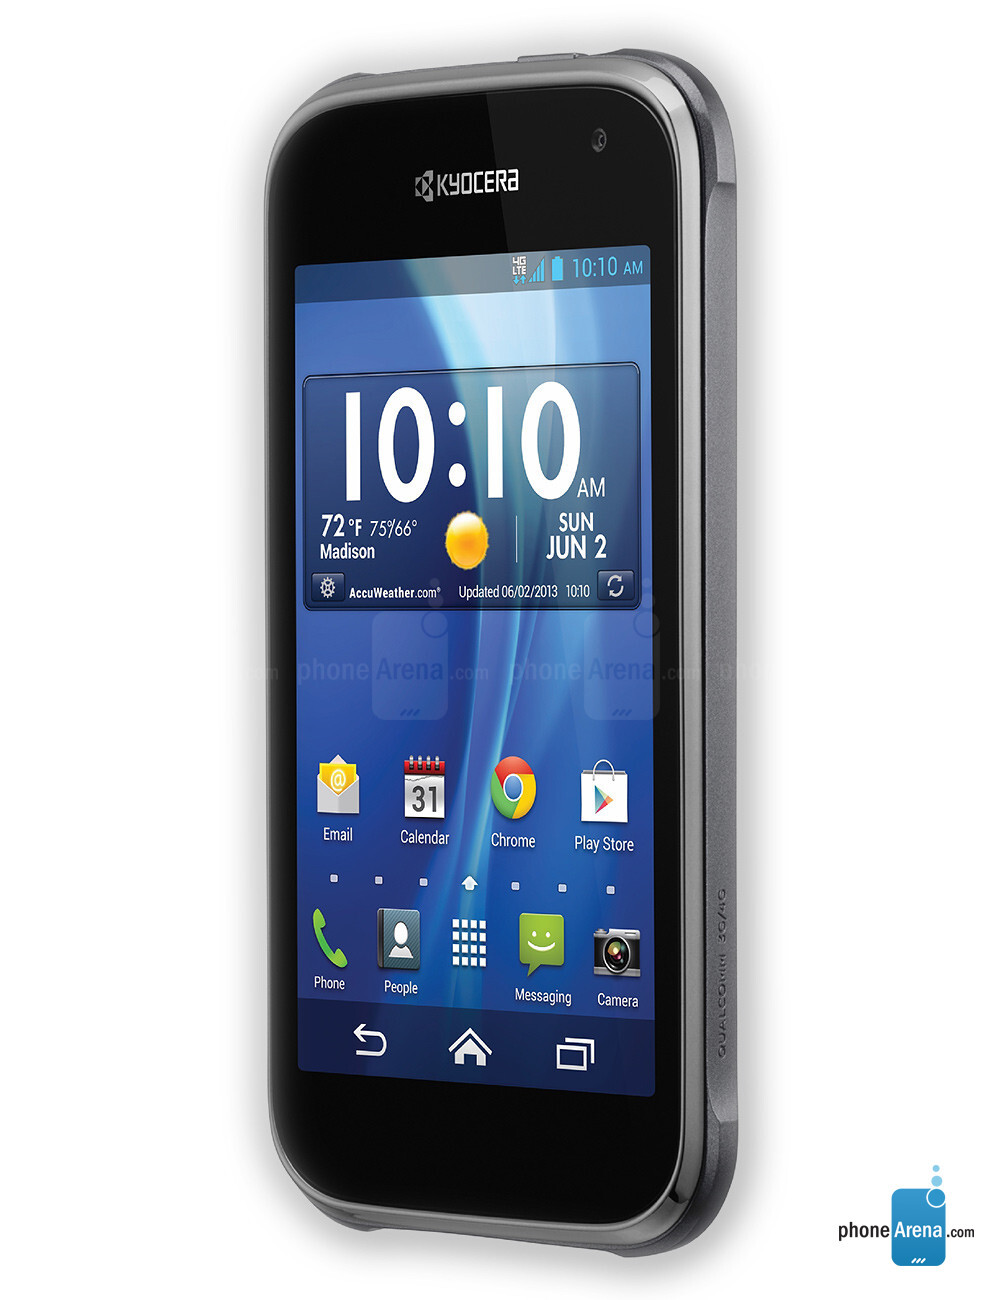 Kyocera Hydro Images - Reverse Search